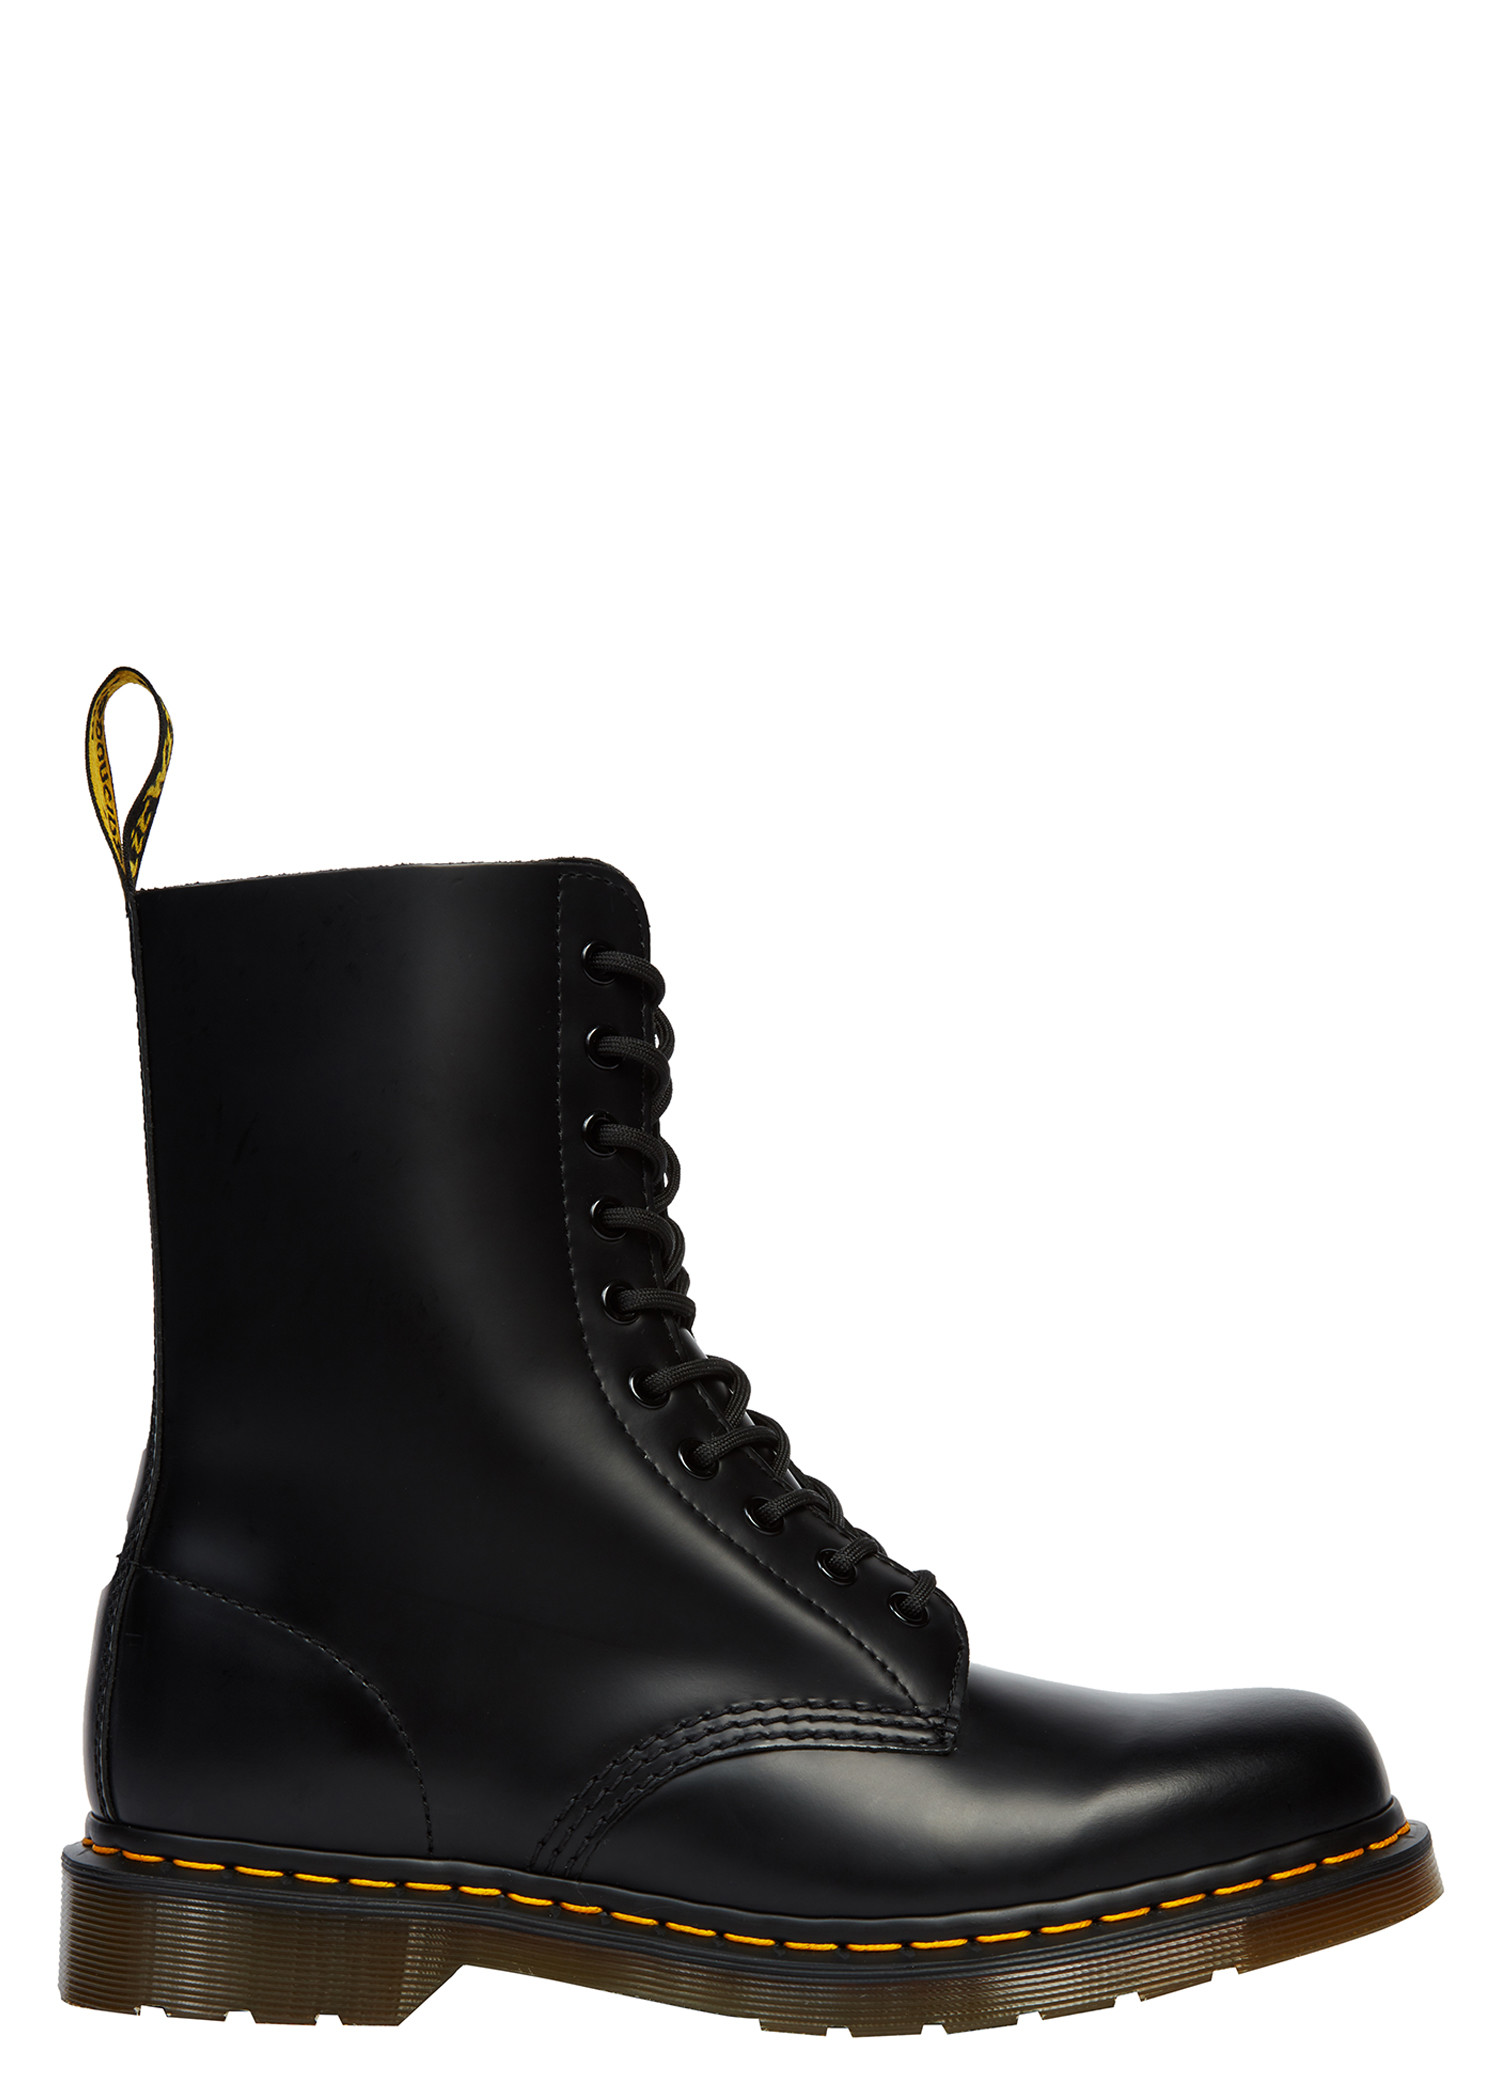 Dr. Martens 1460 W Smooth In Black